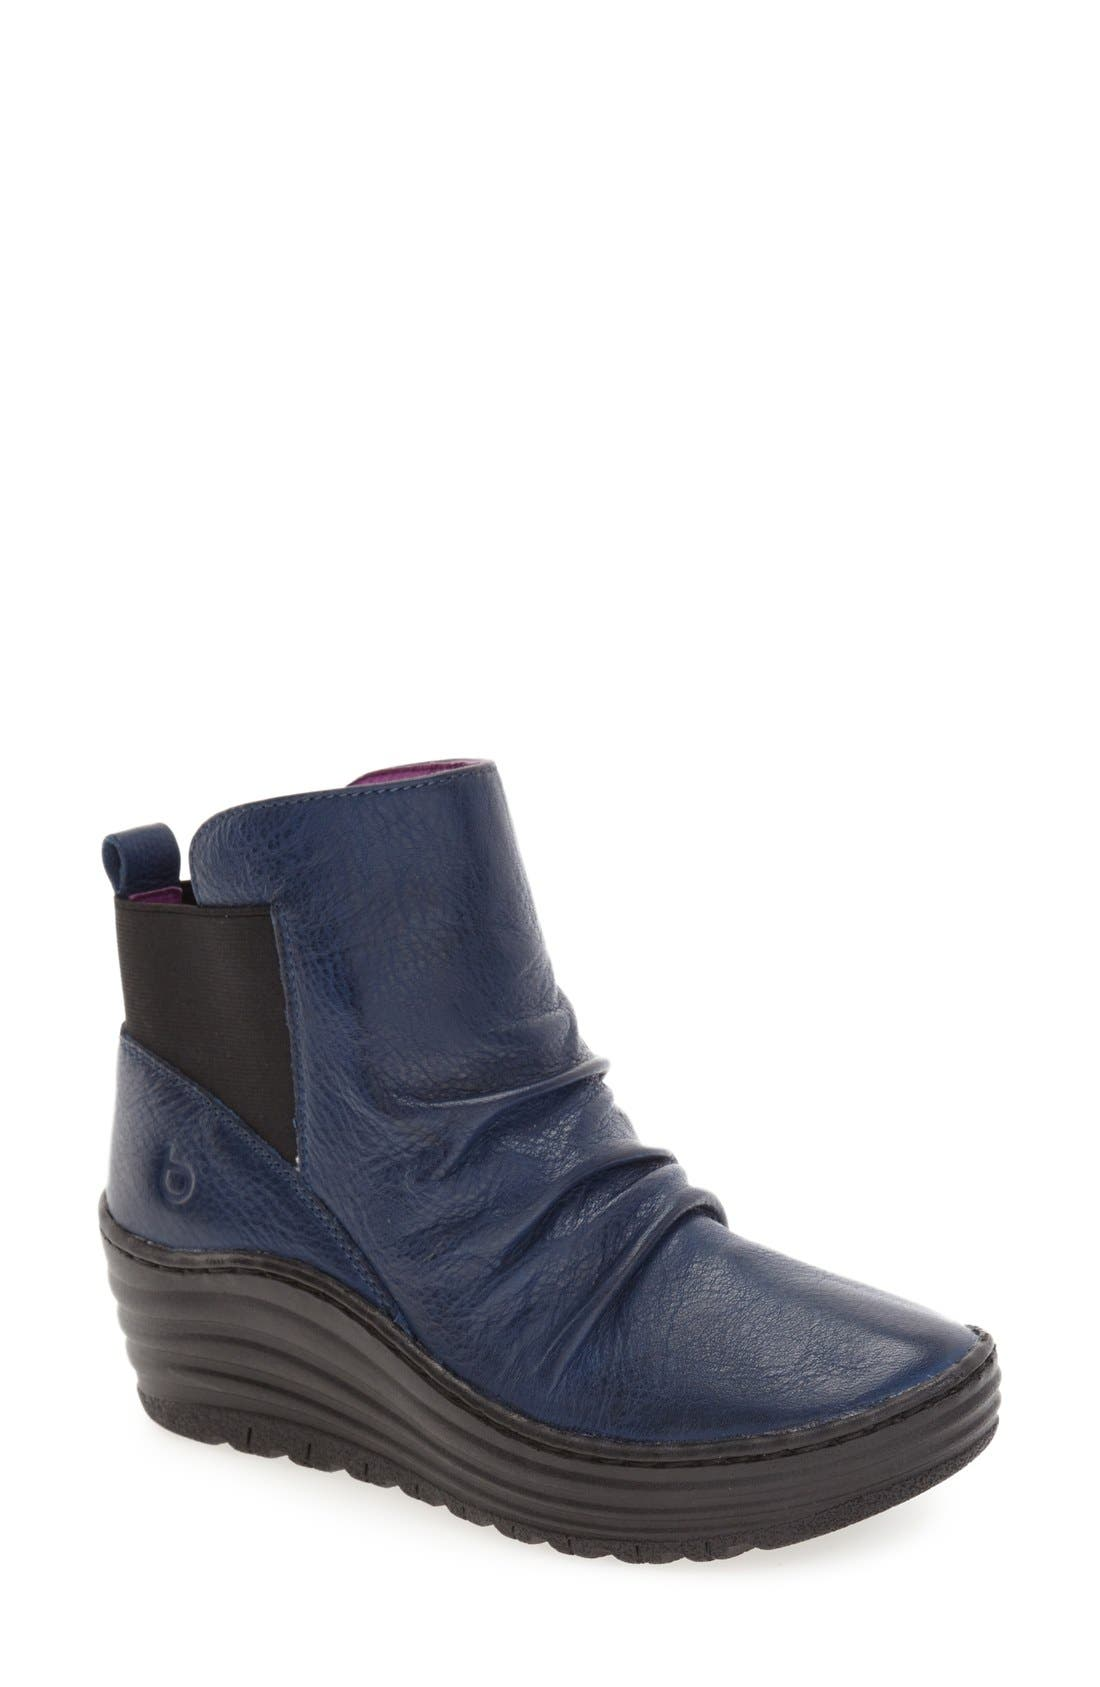 BIONICA 'Gilford' Wedge Bootie